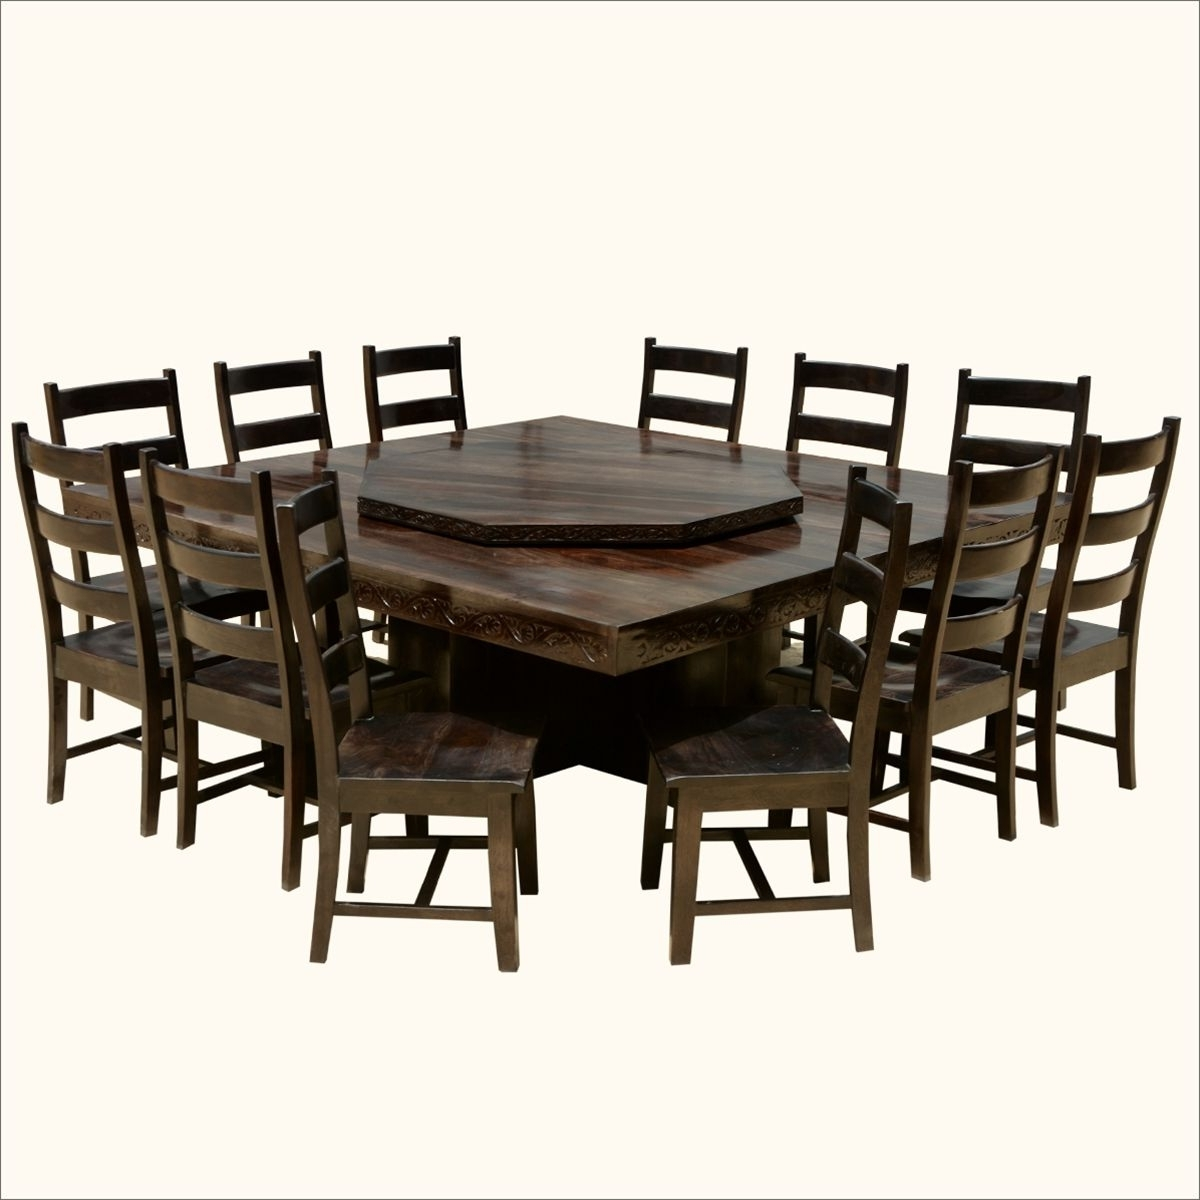 Trendy Laurent 7 Piece Rectangle Dining Sets With Wood Chairs With Regard To Modern Pioneer Solid Wood Lazy Susan Pedestal Dining Table & Chair (View 18 of 25)